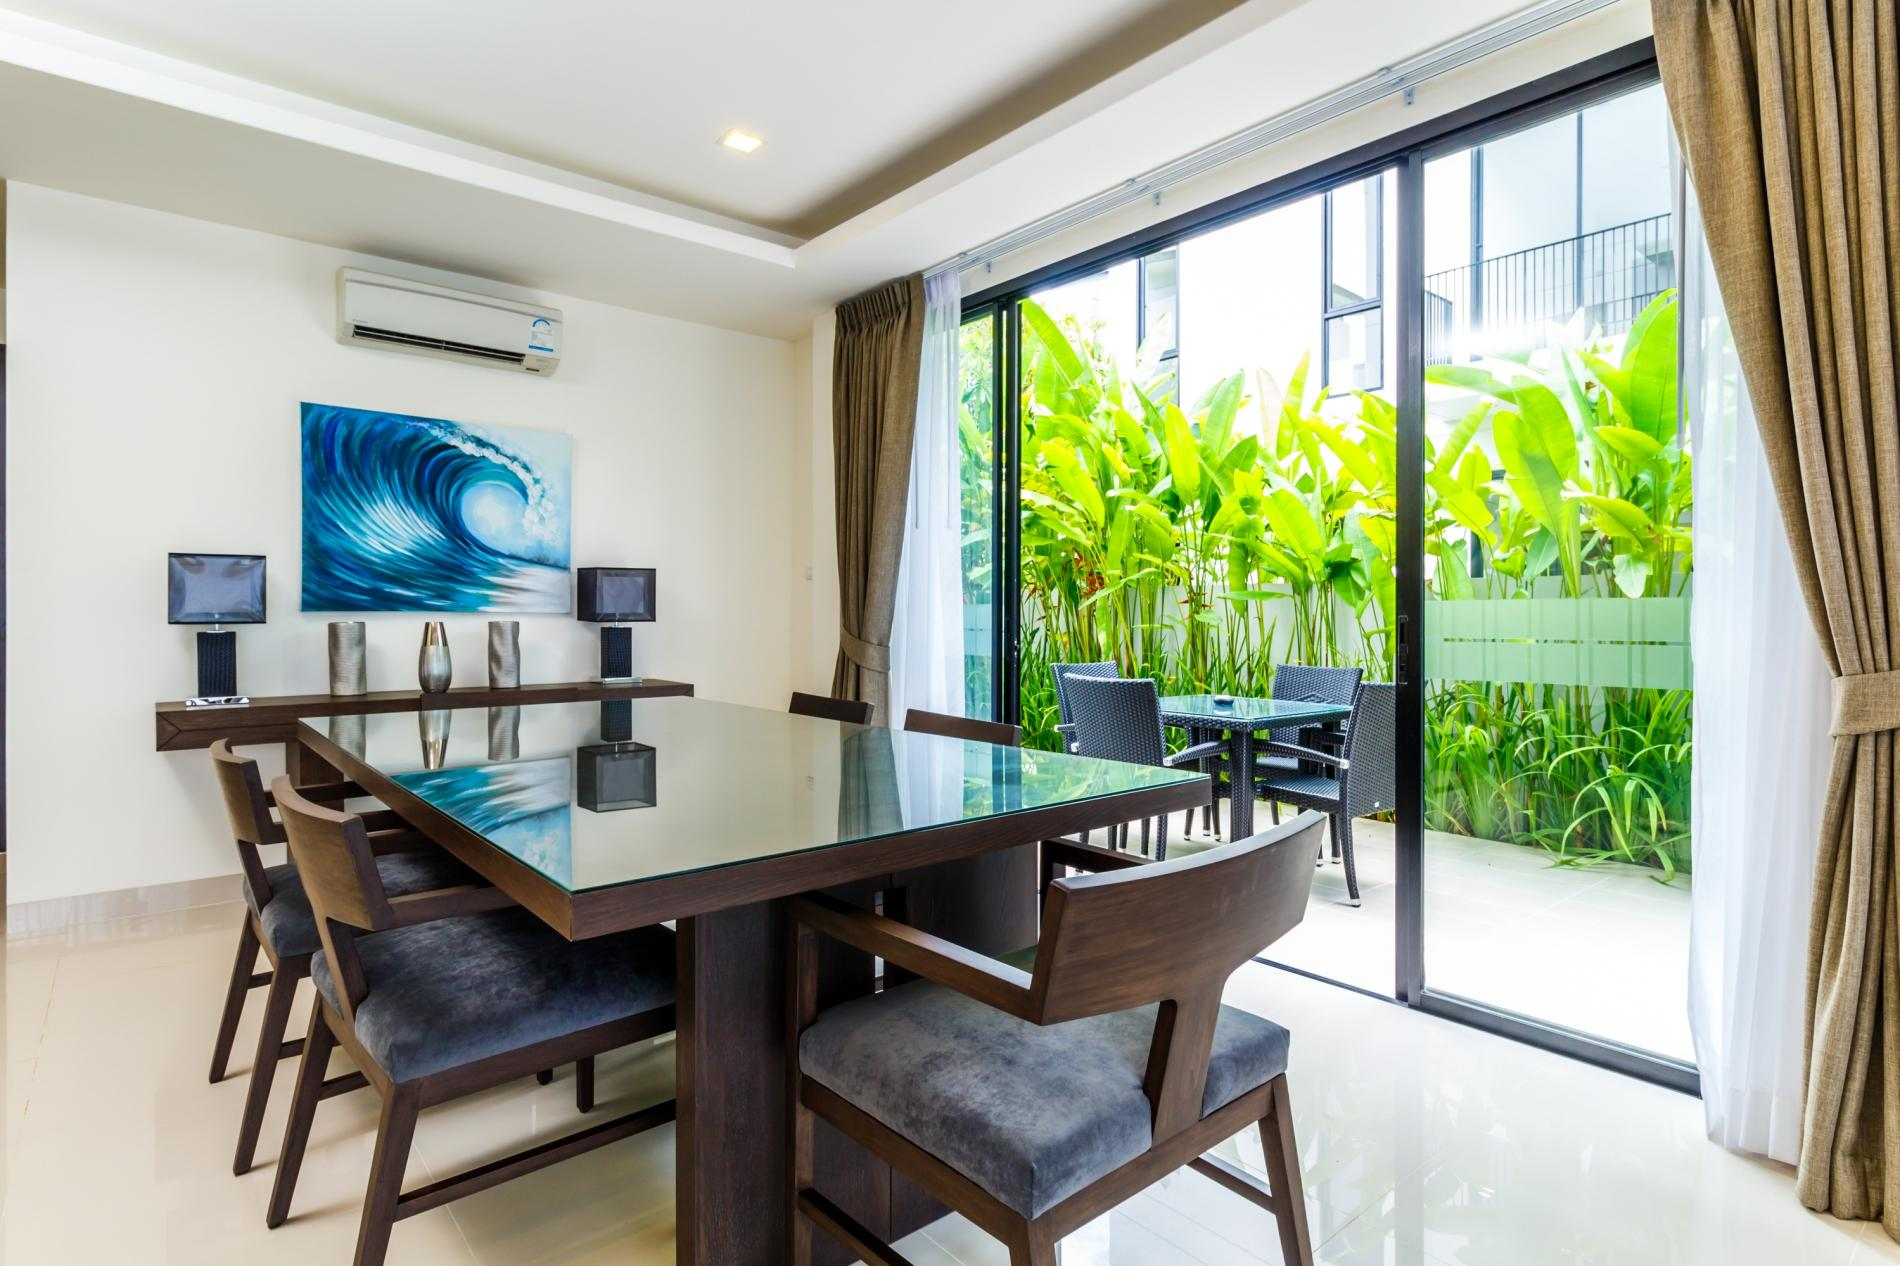 LP101 - Private rooftop pool villa in Laguna for 9 people, near restaurants and shops photo 16813050